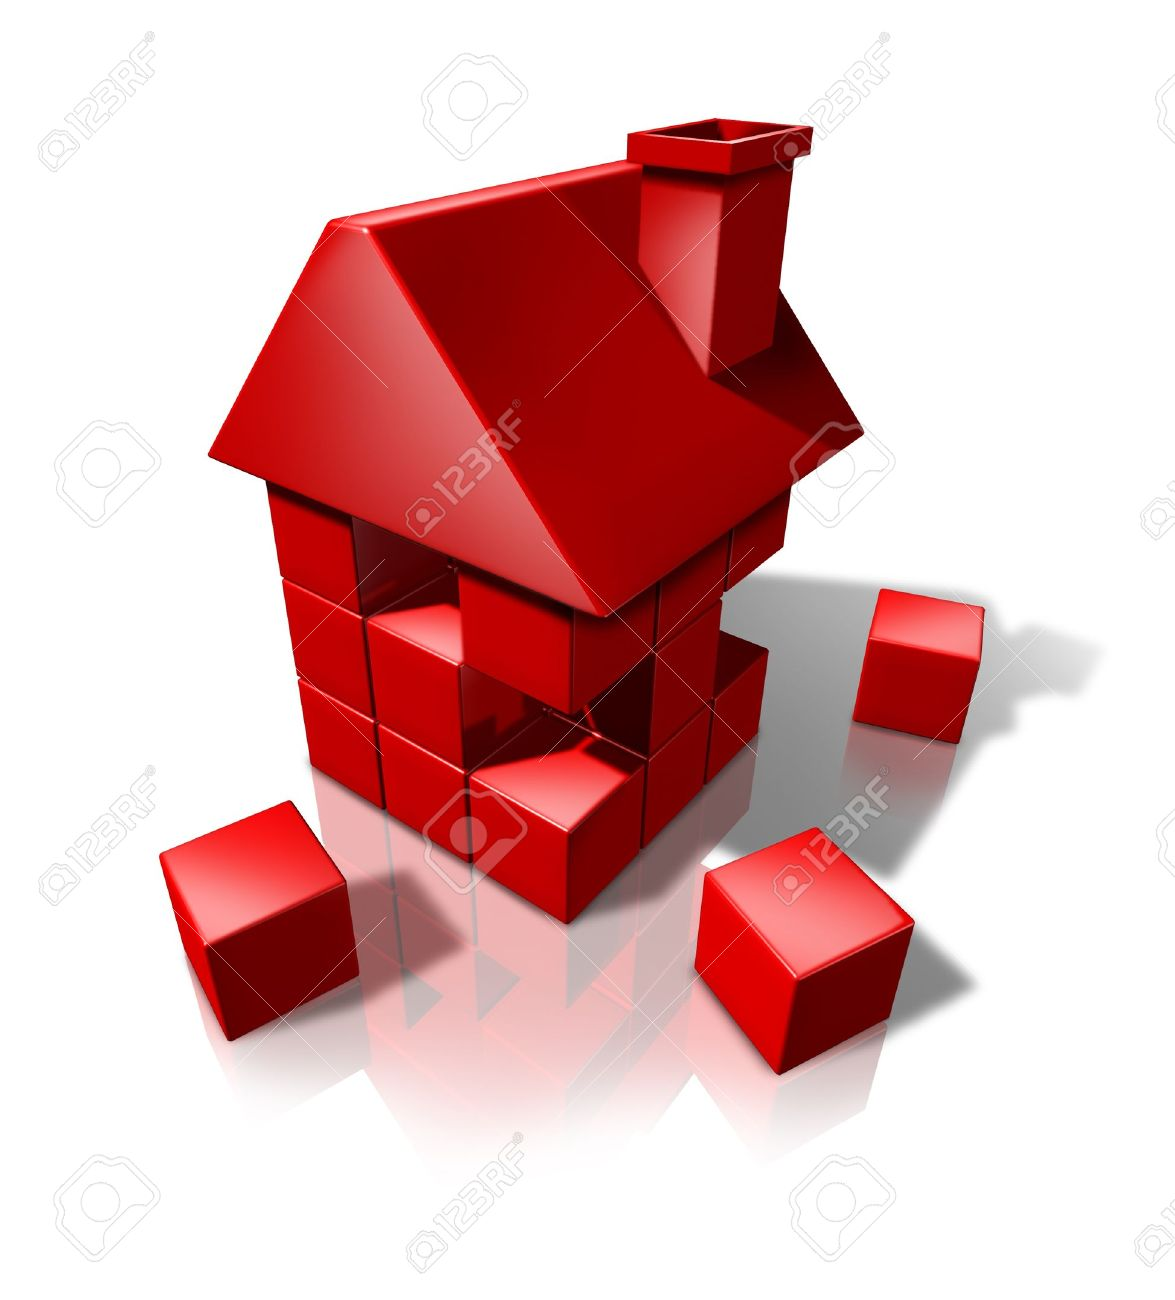 Housing Construction And Real Estate Industry Builders With Red.